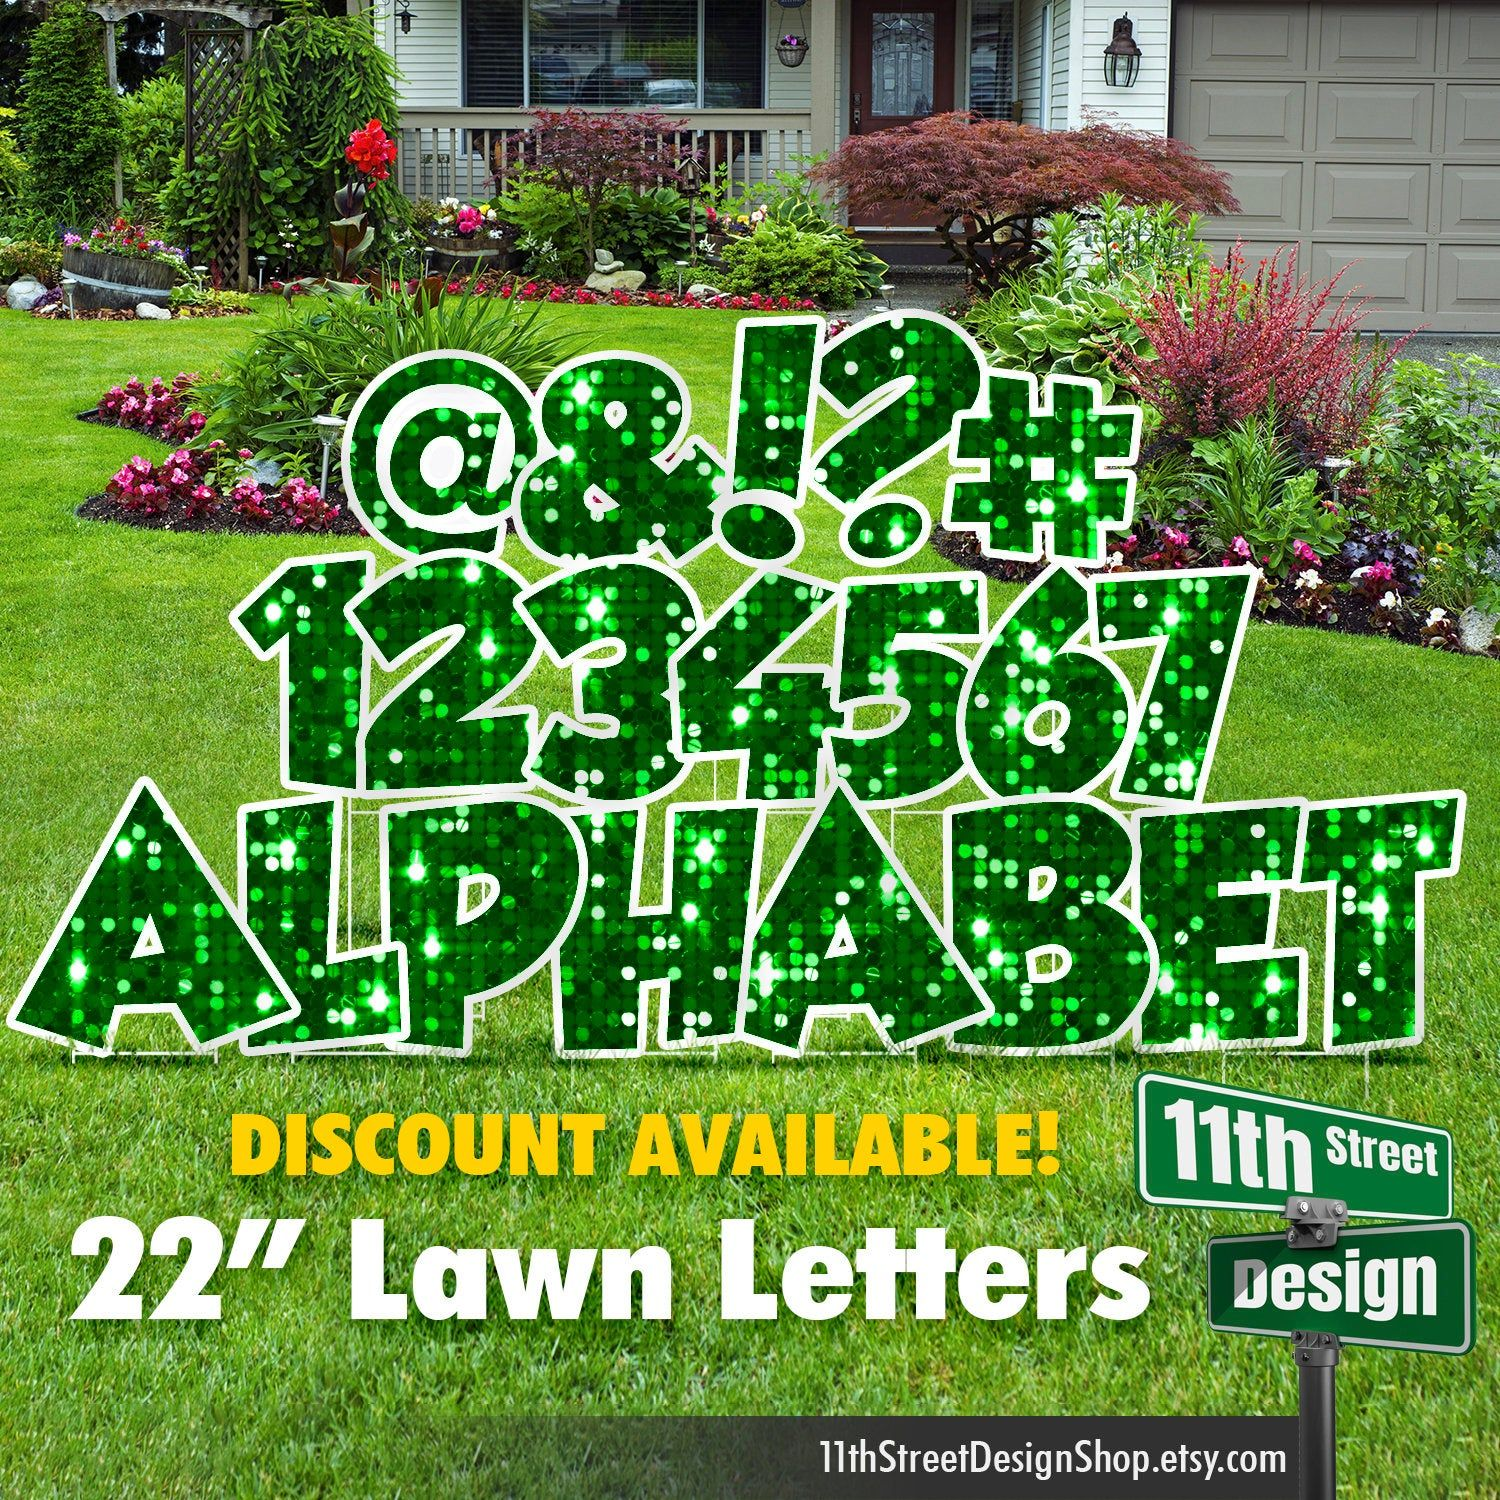 22 Green Sparkle Lawn Letter Yard Signs 22 Chunky Etsy In 2021 Yard Signs Yard Cards Lawn Decor